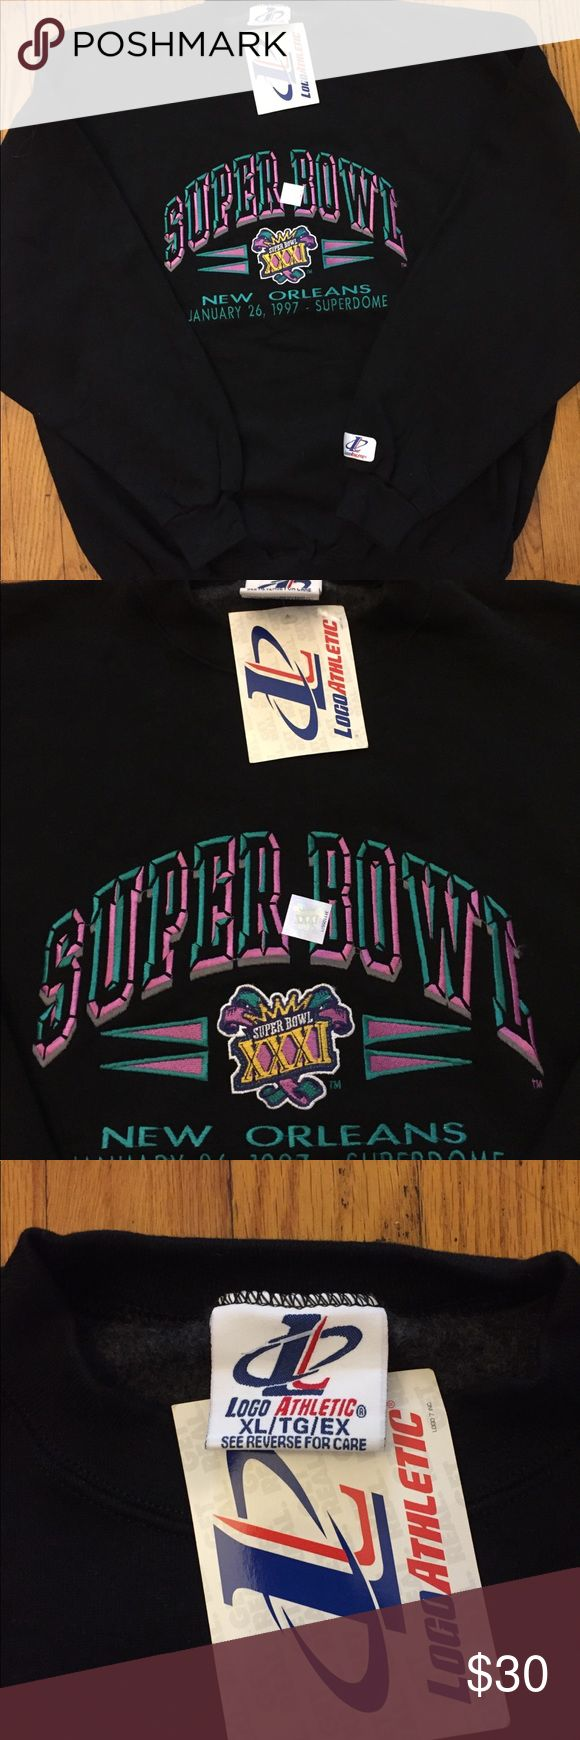 Vintage Super Bowl 1997 crewneck Vintage 1997 Super Bowl crewneck. New with tags. Great contrition. Really cool crewneck for any sport fan. No rips or stains Logo Athletic Sweaters Crewneck